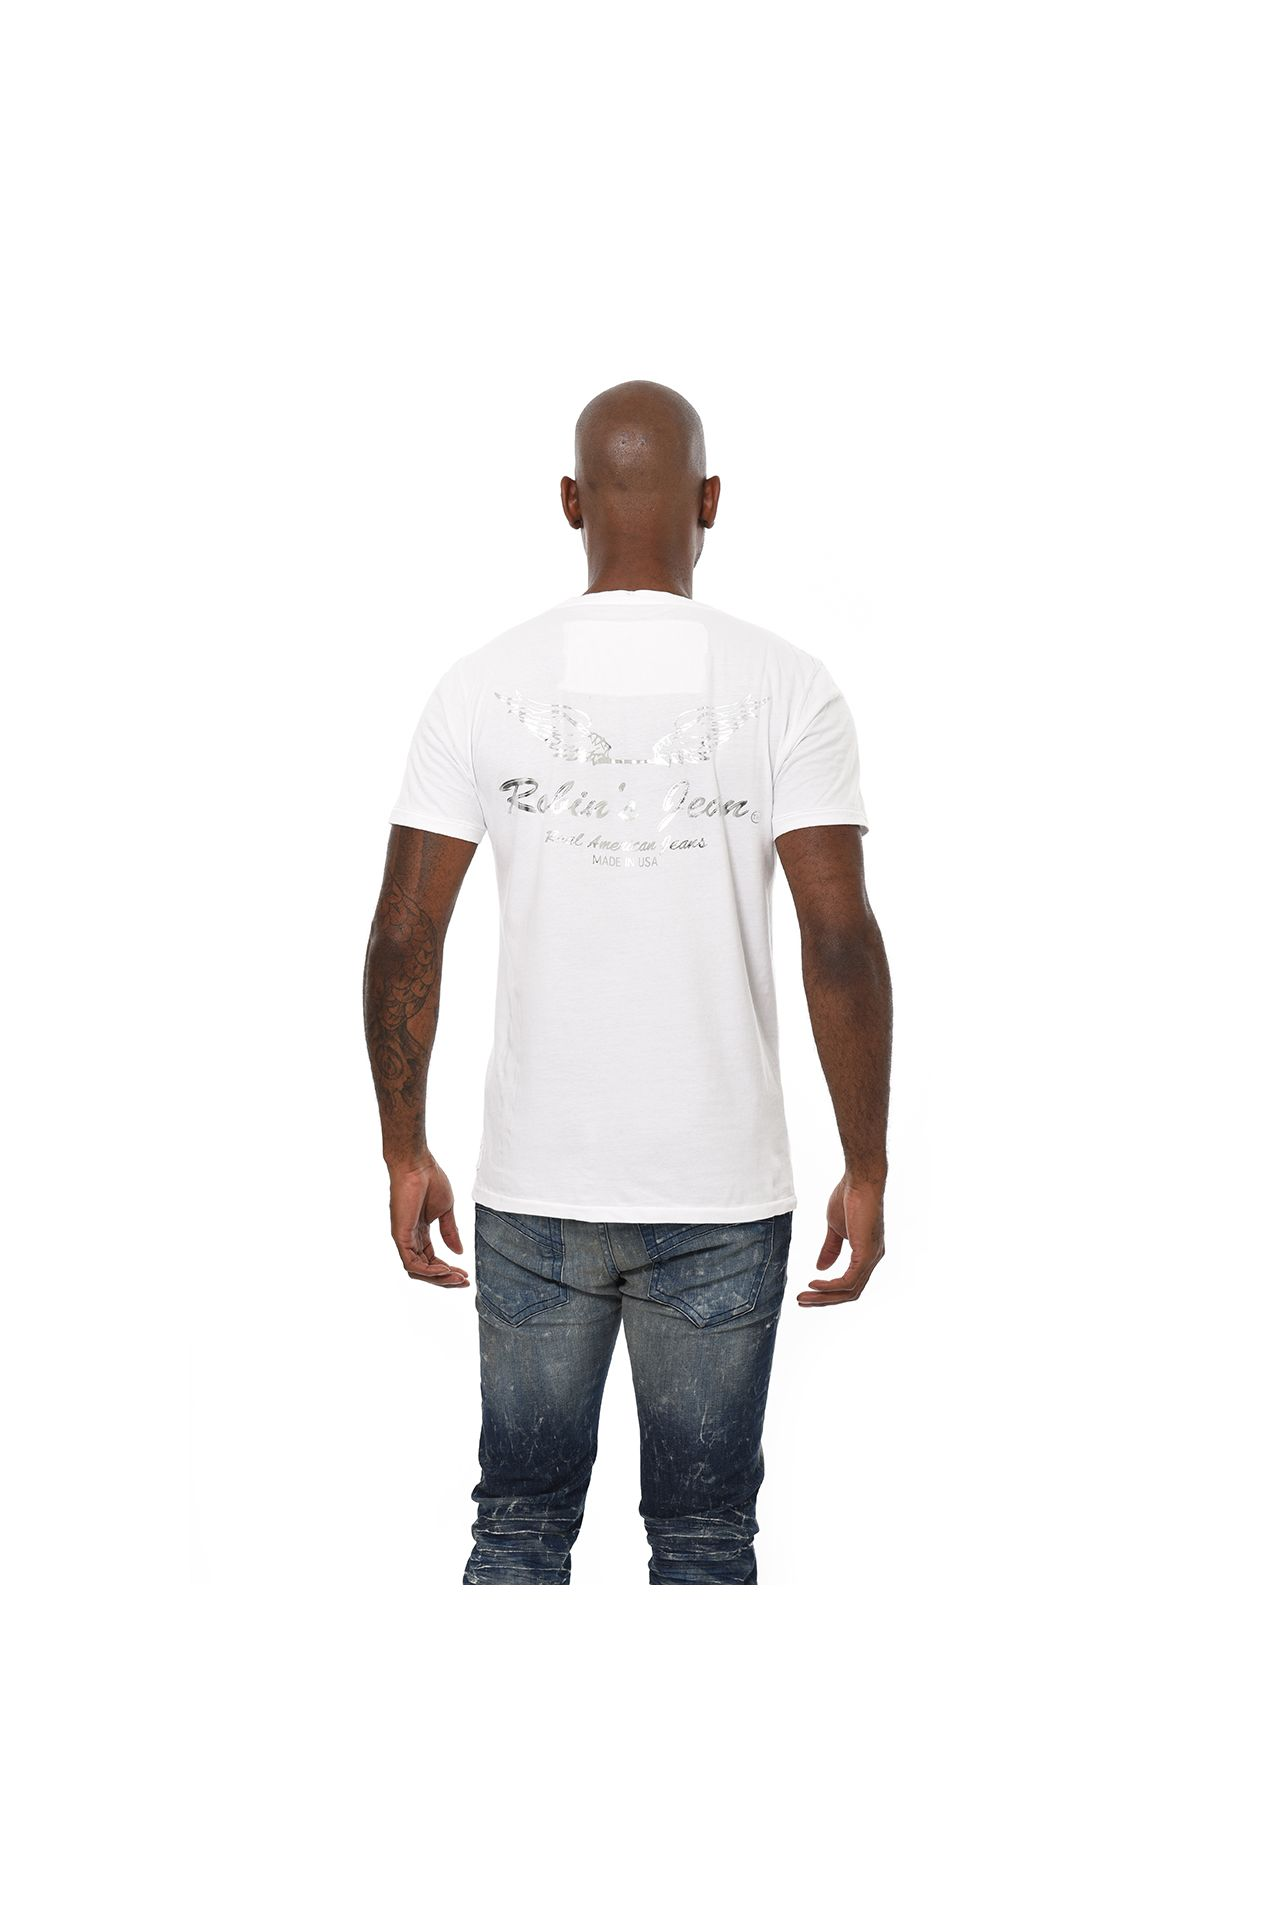 BAR WINGS SILVER FOIL TEE IN WHITE